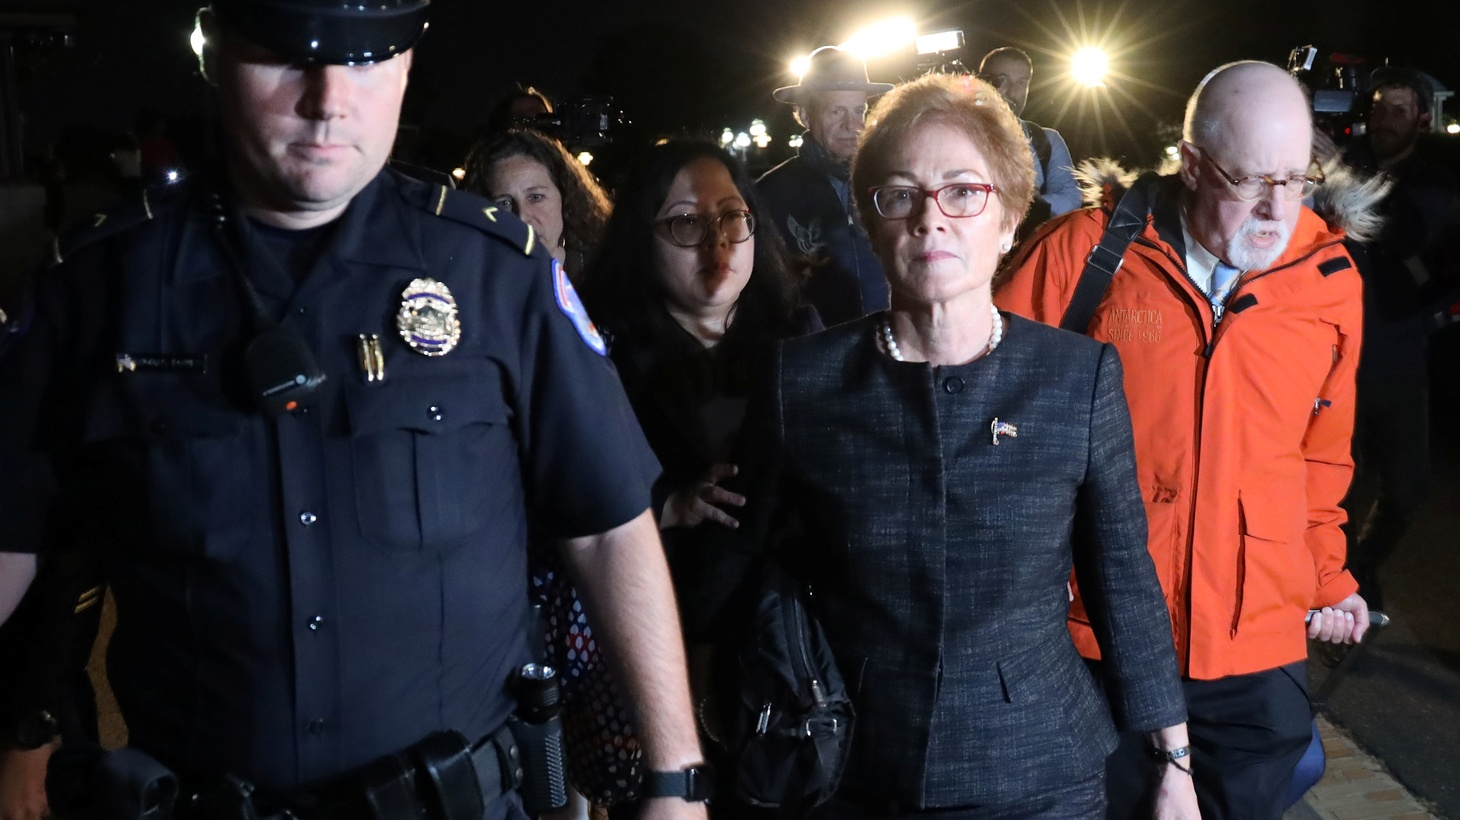 U.S. Capitol Police guide former U.S. ambassador to Ukraine Marie Yovanovitch as she departs after testifying in the U.S. House of Representatives impeachment inquiry into U.S. President Trump on Capitol Hill in Washington, U.S., October 11, 2019.